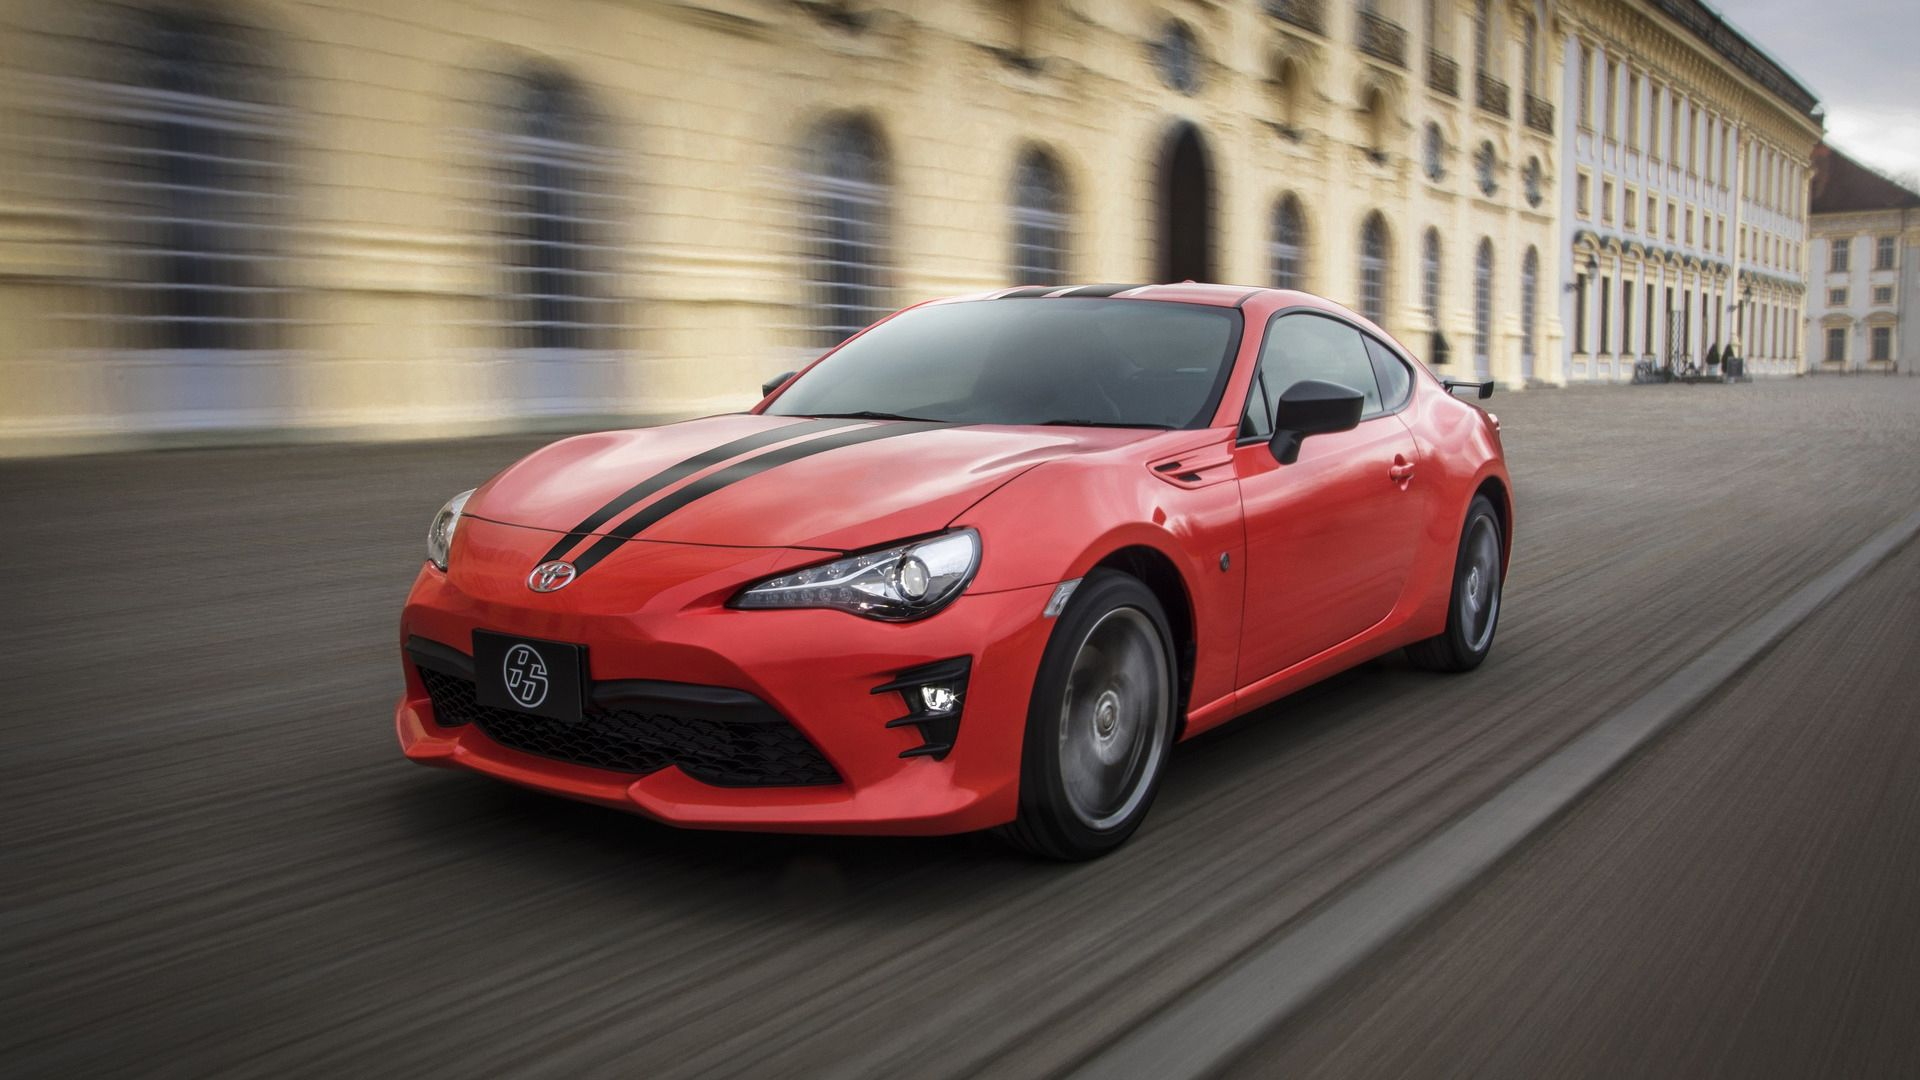 11 Best Drift Cars For Beginners 2020 2021 Updated Toyota 86 Toyota Gt86 Cool Sports Cars